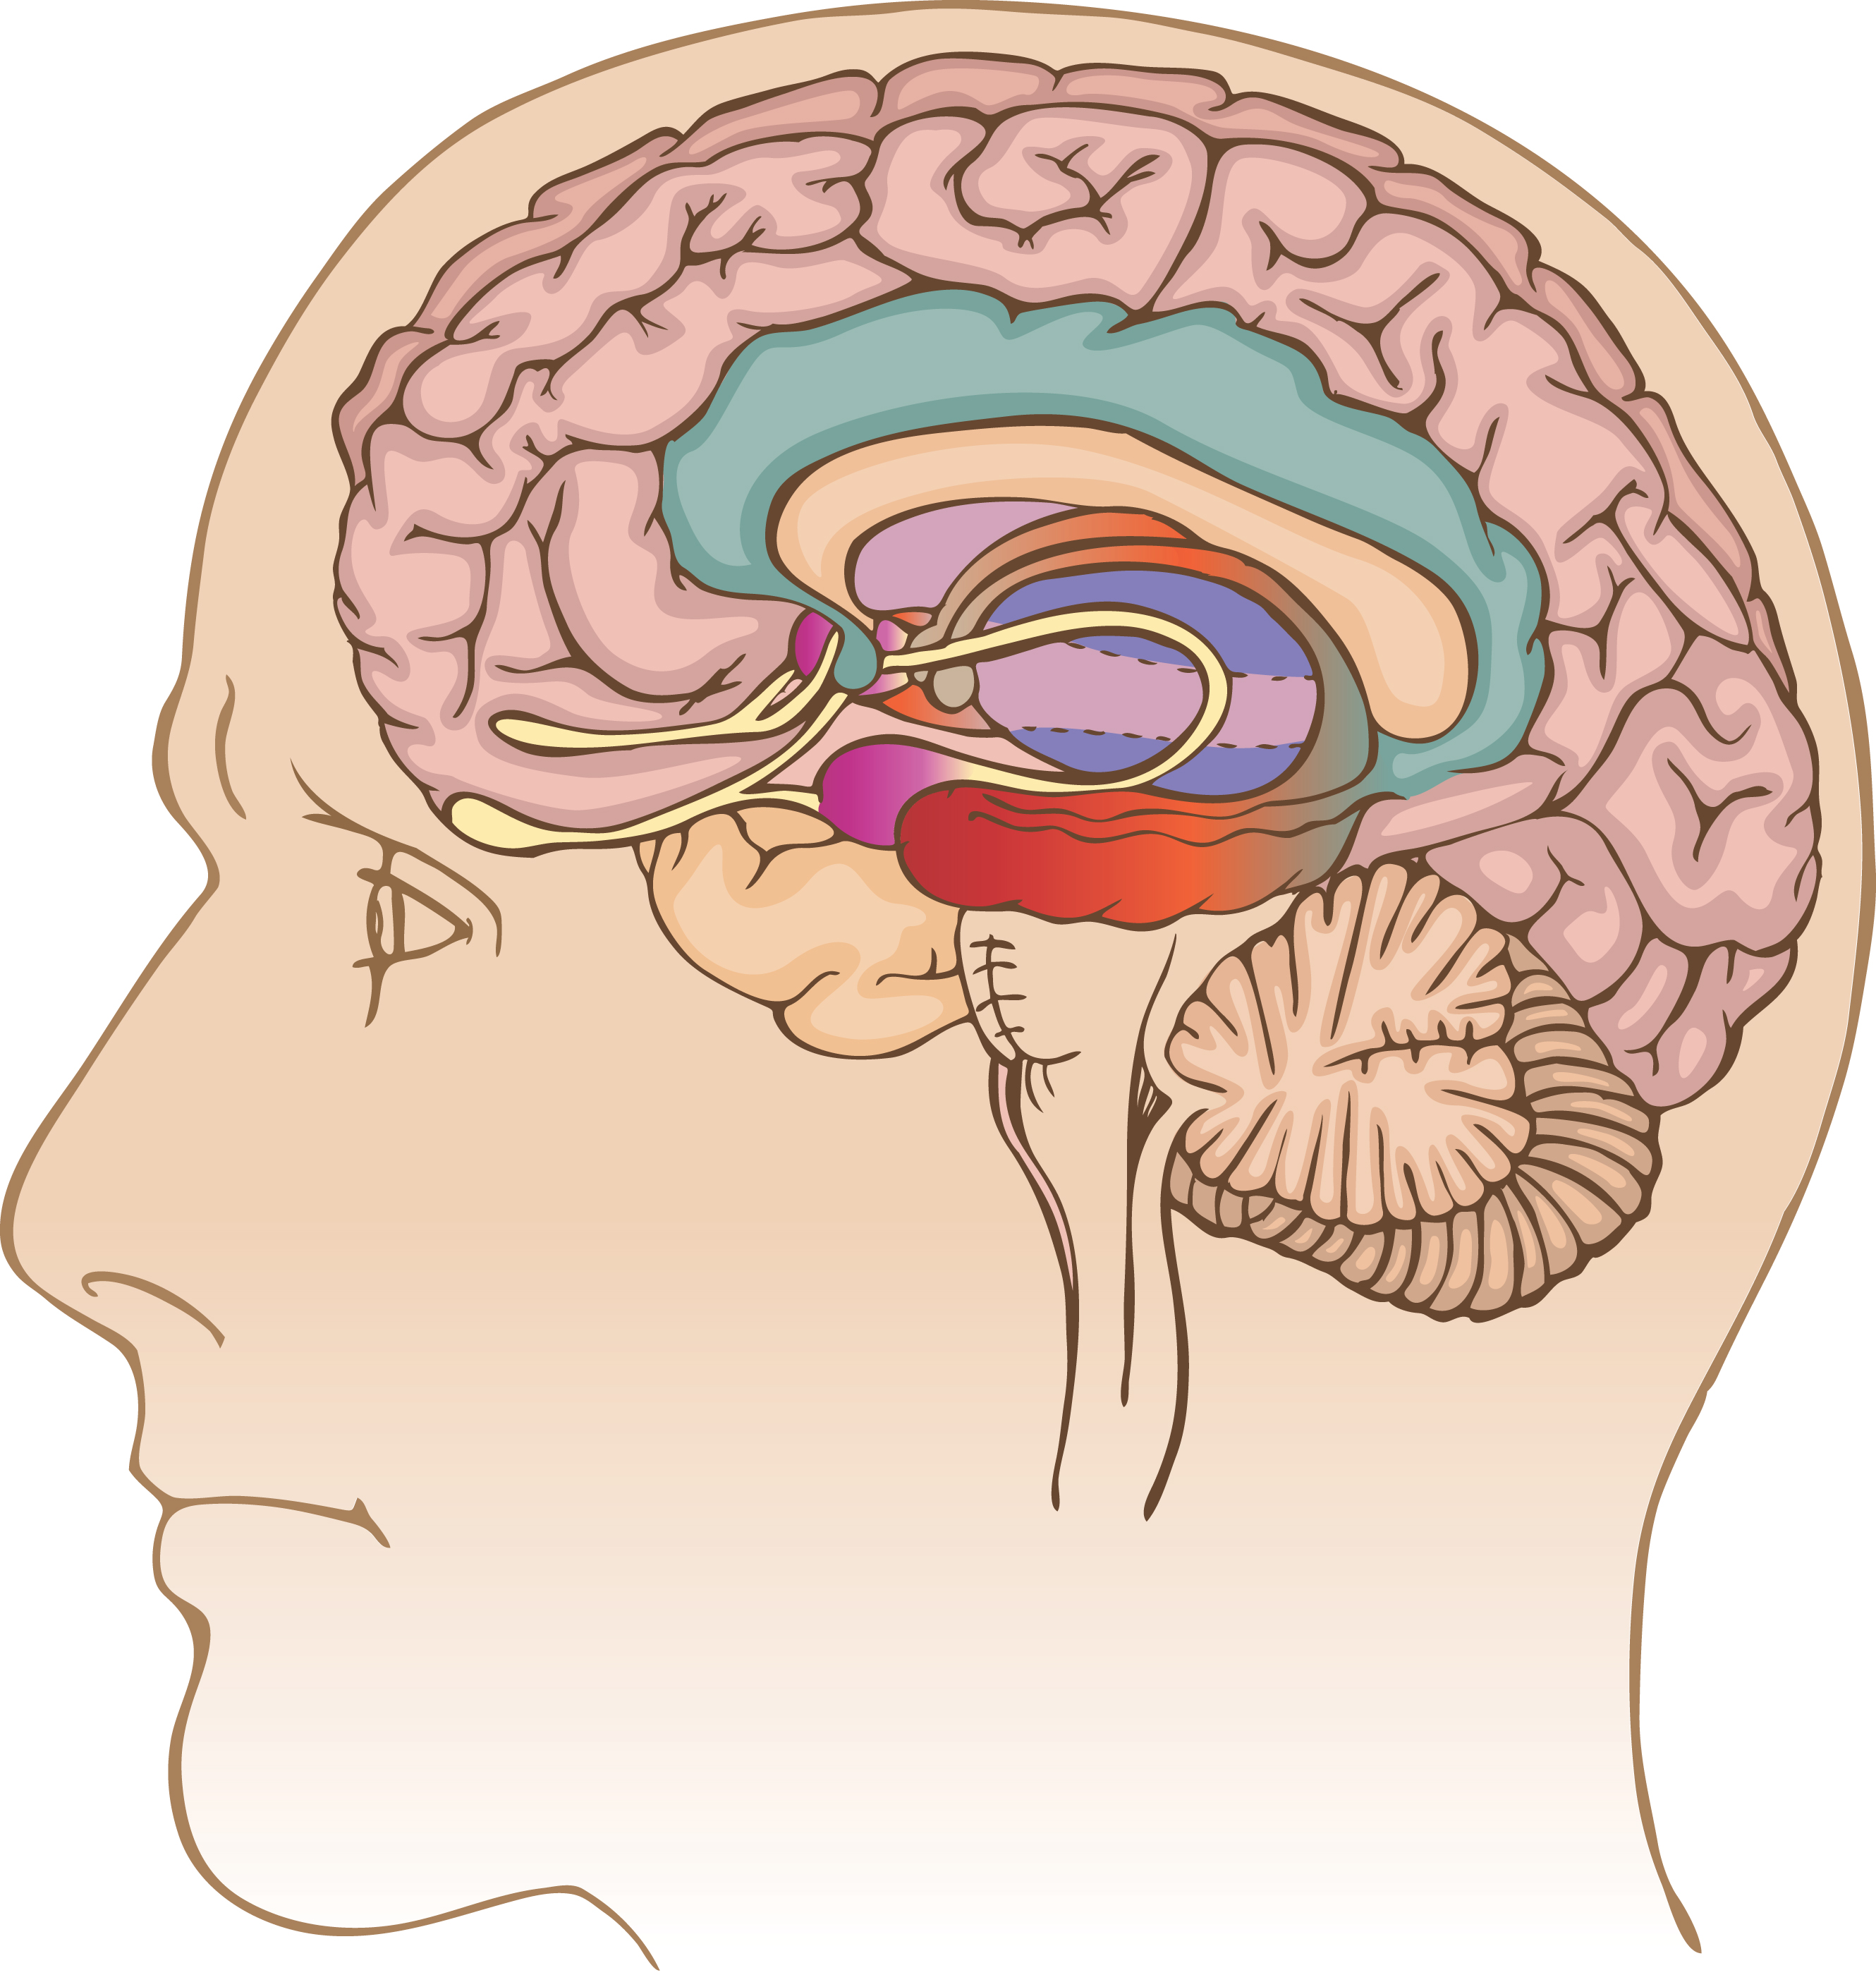 Blank diagram of the limbic system all kind of wiring diagrams support groups different brains schlesinger pain center rh schlespain com blank basal ganglia diagram subcortical brain structures limbic system ccuart Gallery